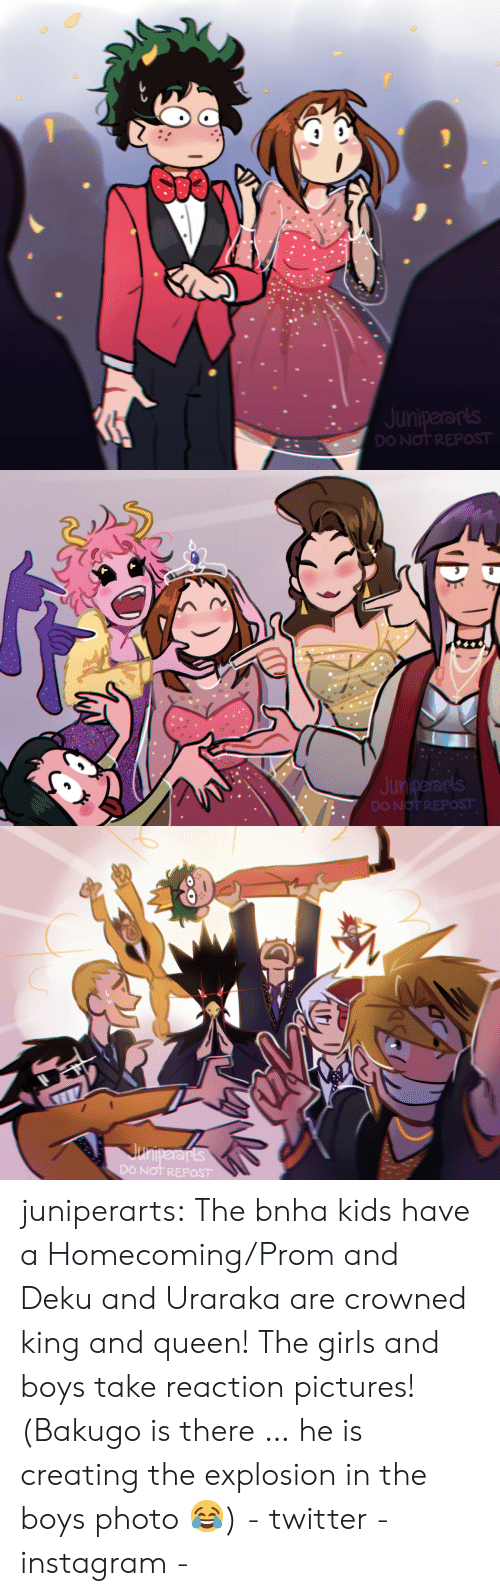 Girls, Instagram, and Taken: Juniperanls  DO Not REPOST   NOT REPOST juniperarts:  The bnha kids have a Homecoming/Prom and Deku and Uraraka are crowned king and queen! The girls and boys take reaction pictures! (Bakugo is there … he is creating the explosion in the boys photo 😂) - twitter - instagram -